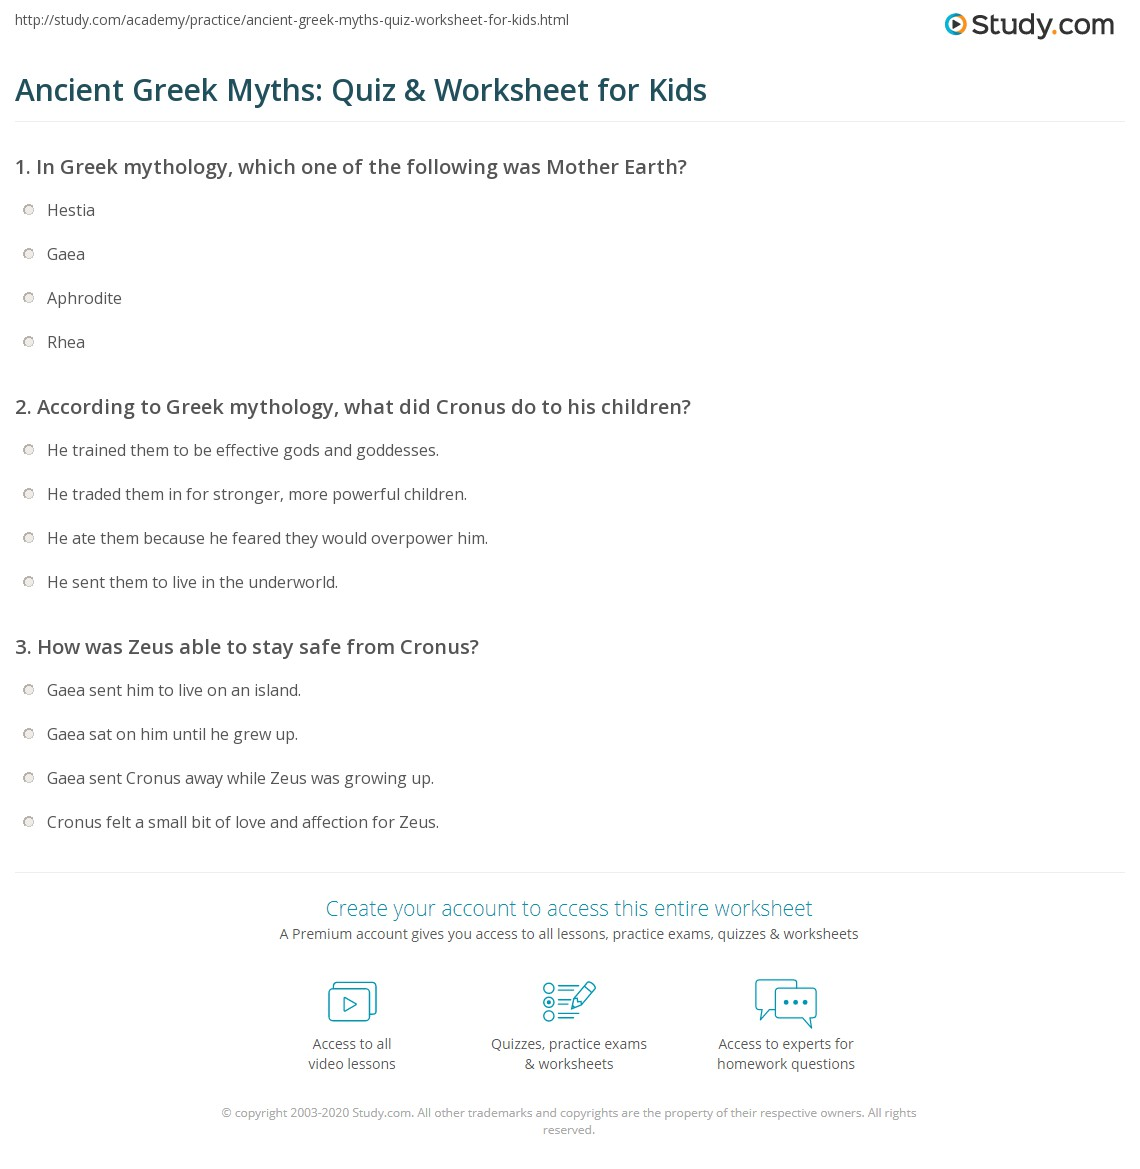 Ancient Greek Myths Quiz Amp Worksheet For Kids